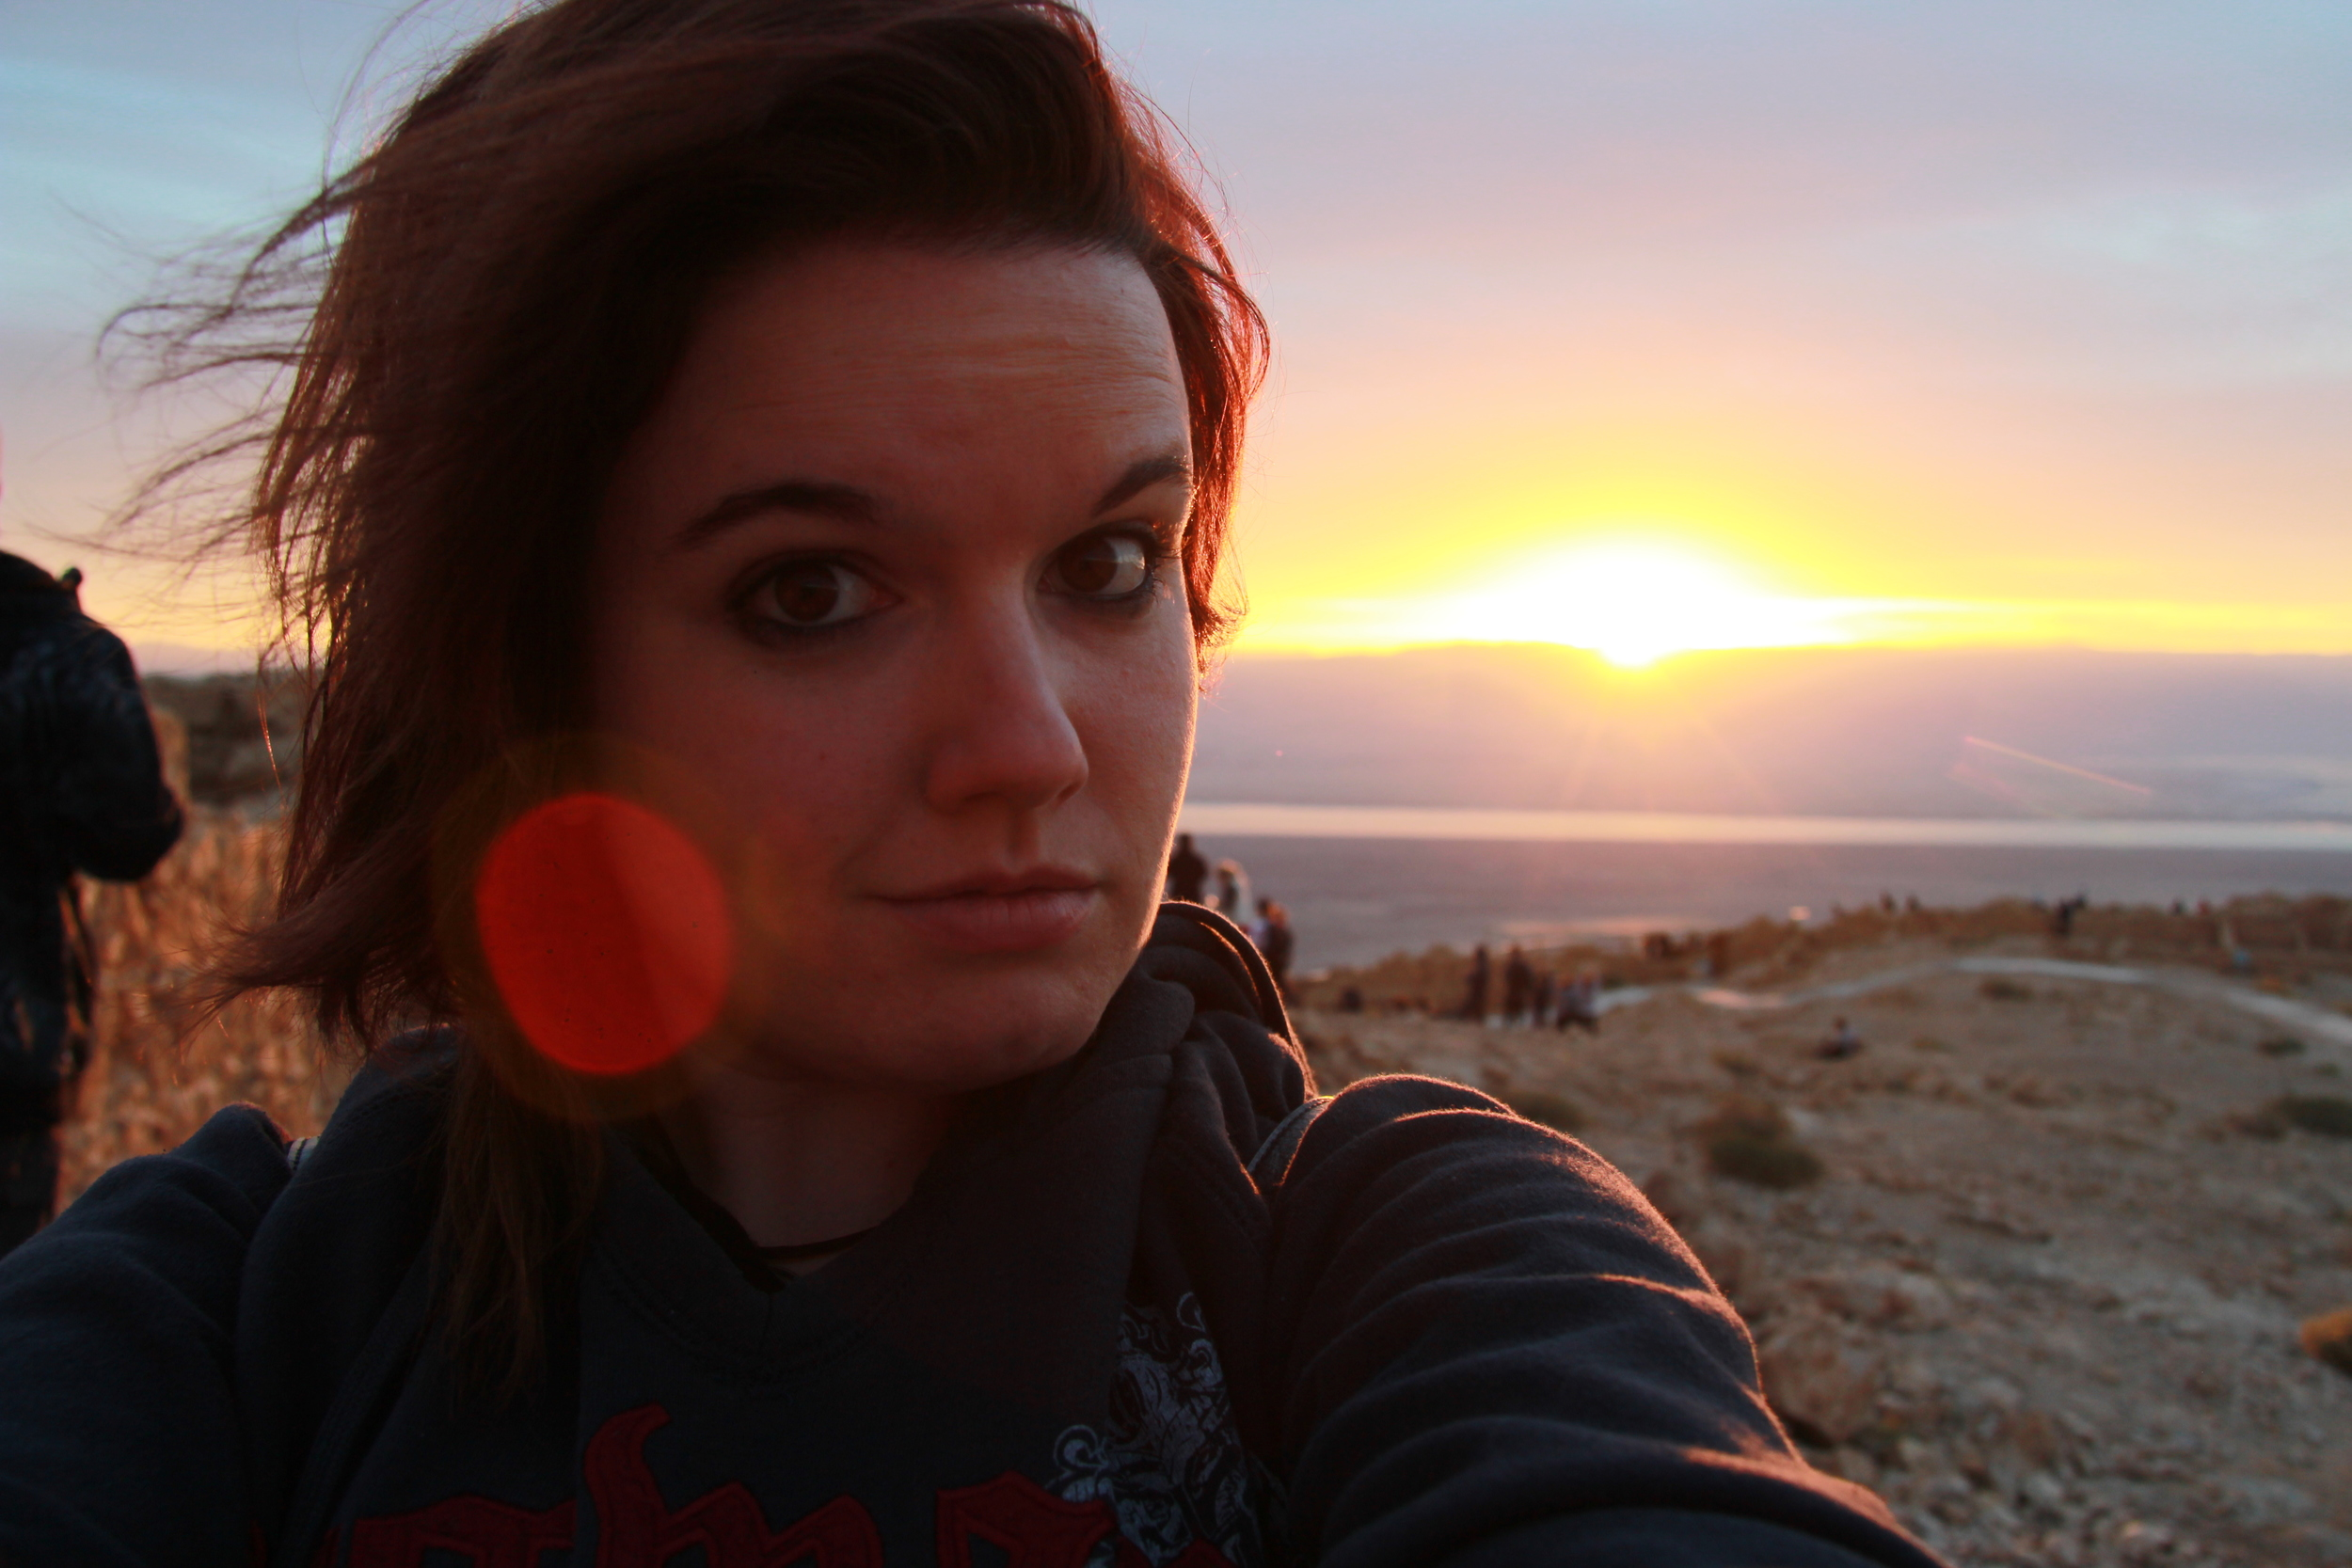 """The only """"selfie"""" I took in Israel - at sunrise atop Masada, a UNESCO world heritage site."""